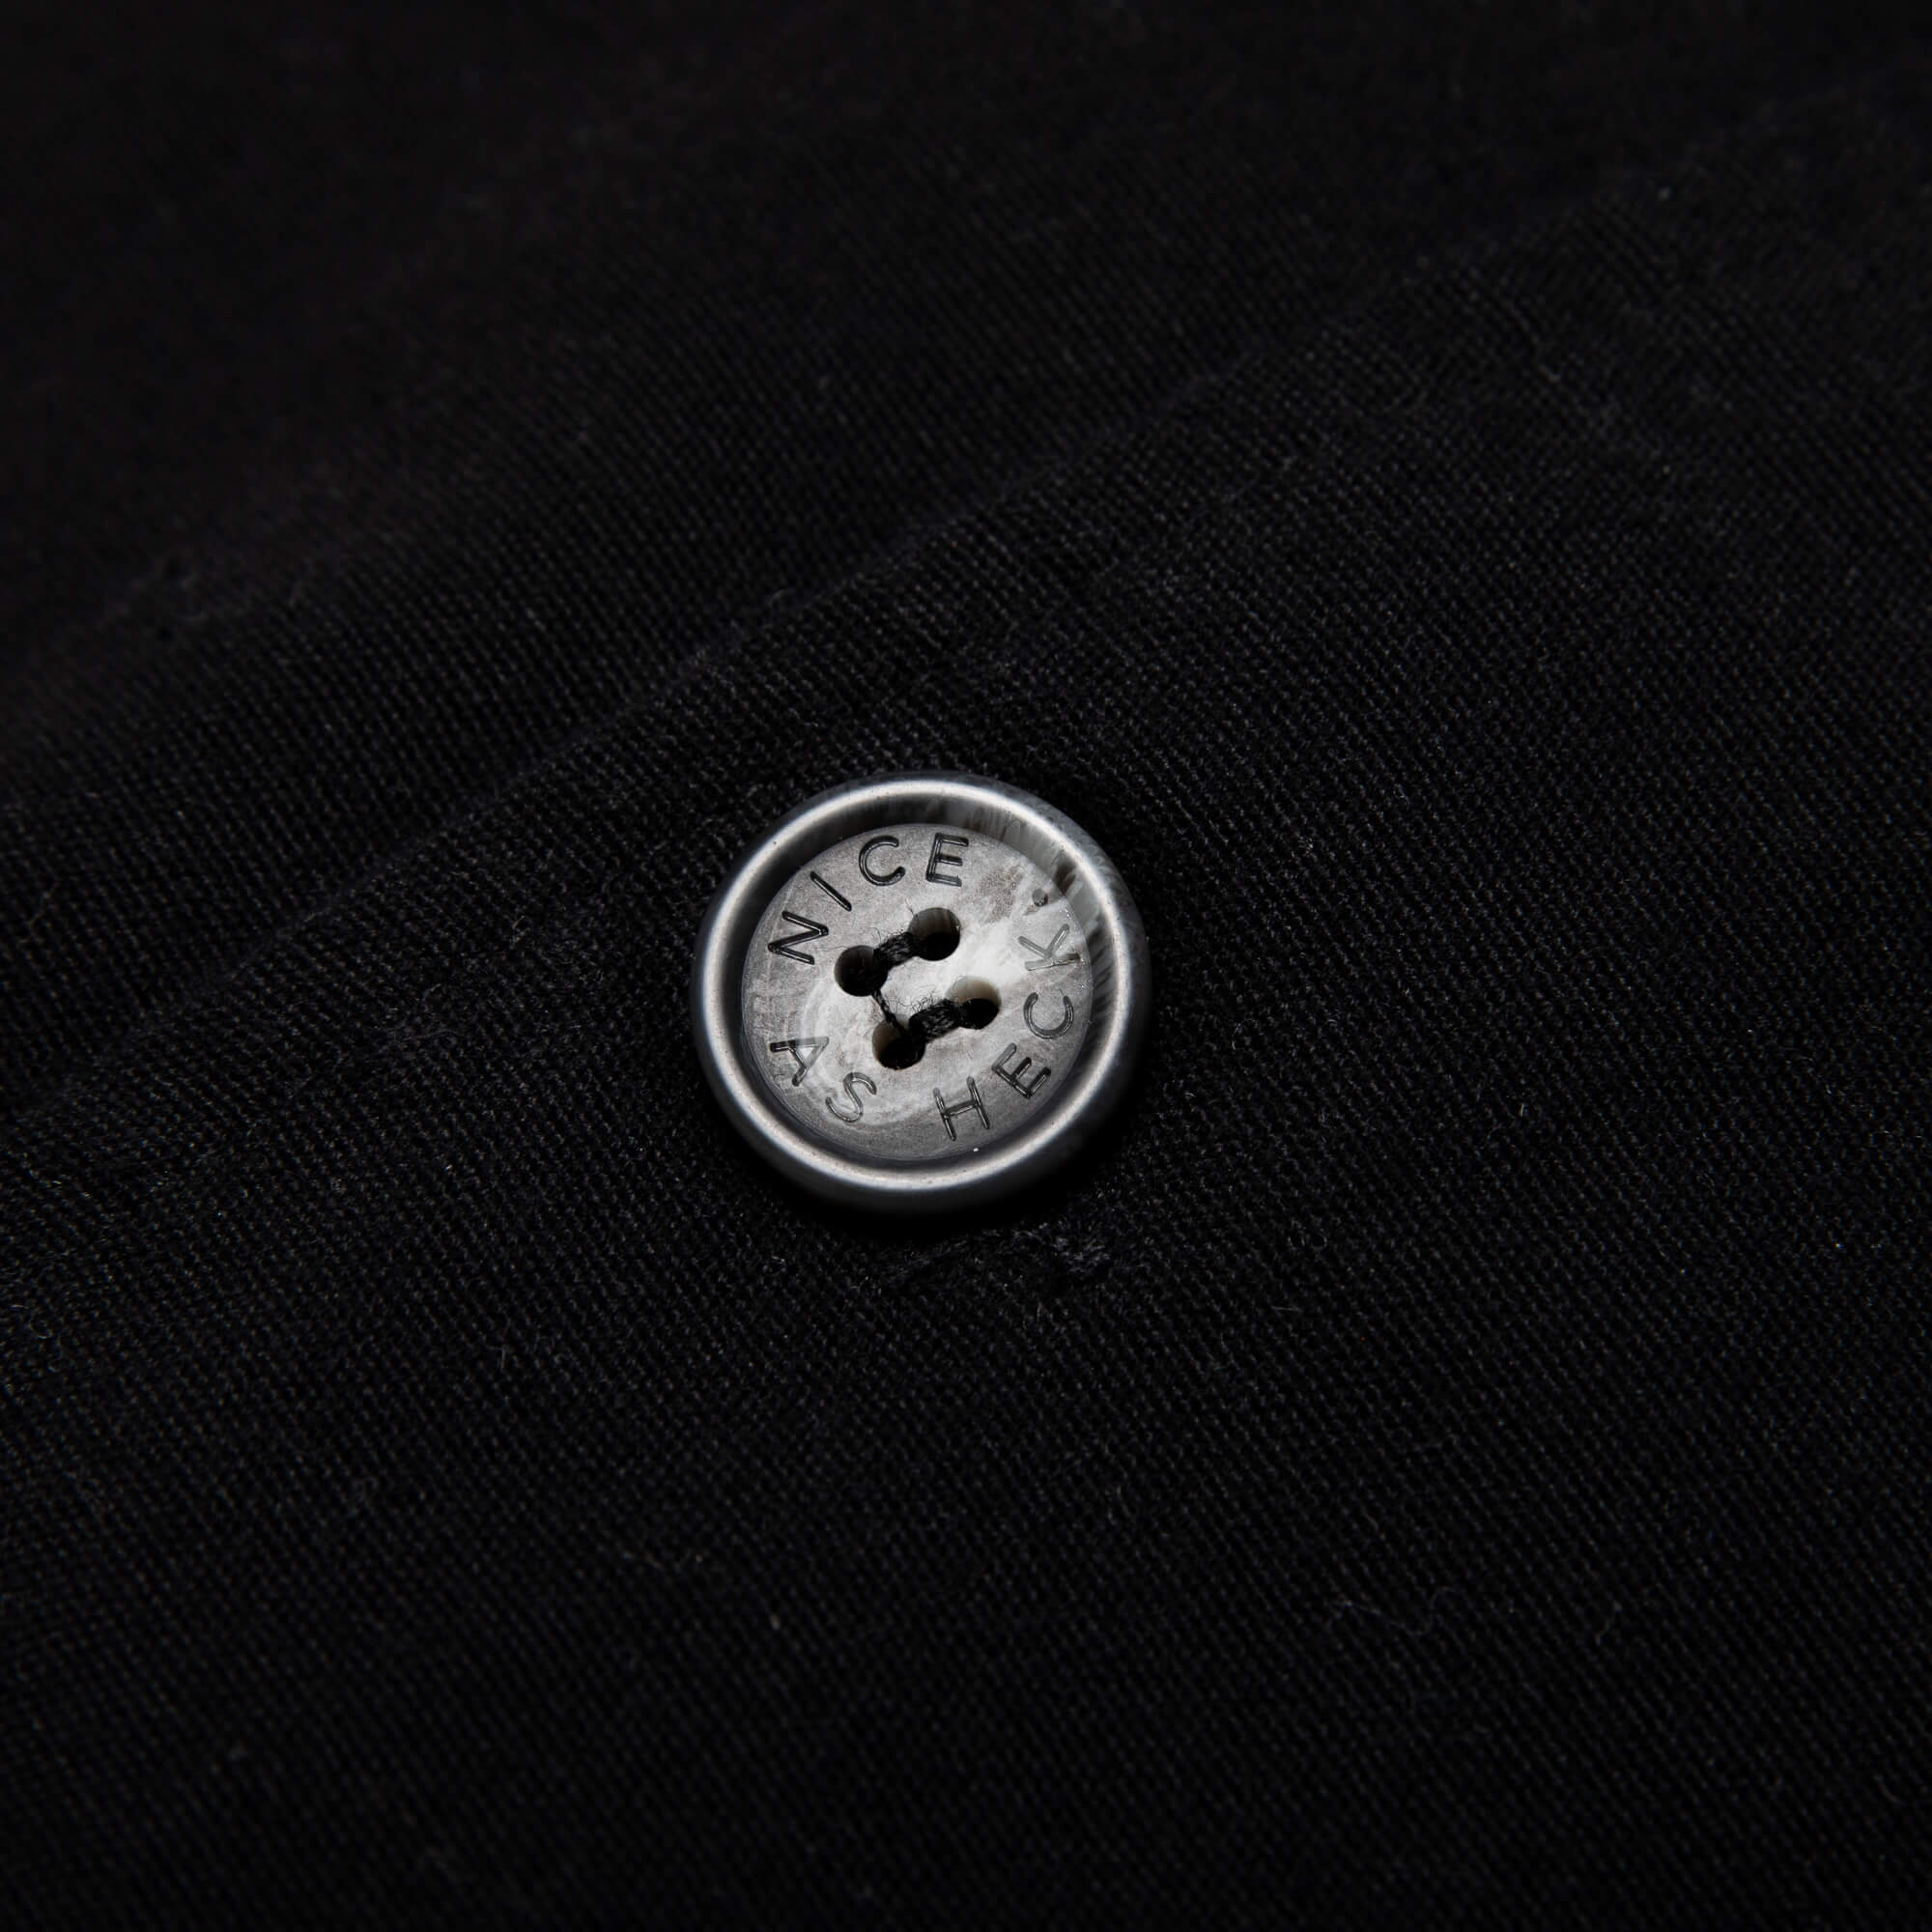 close up image of the black button on the black kickback jacket